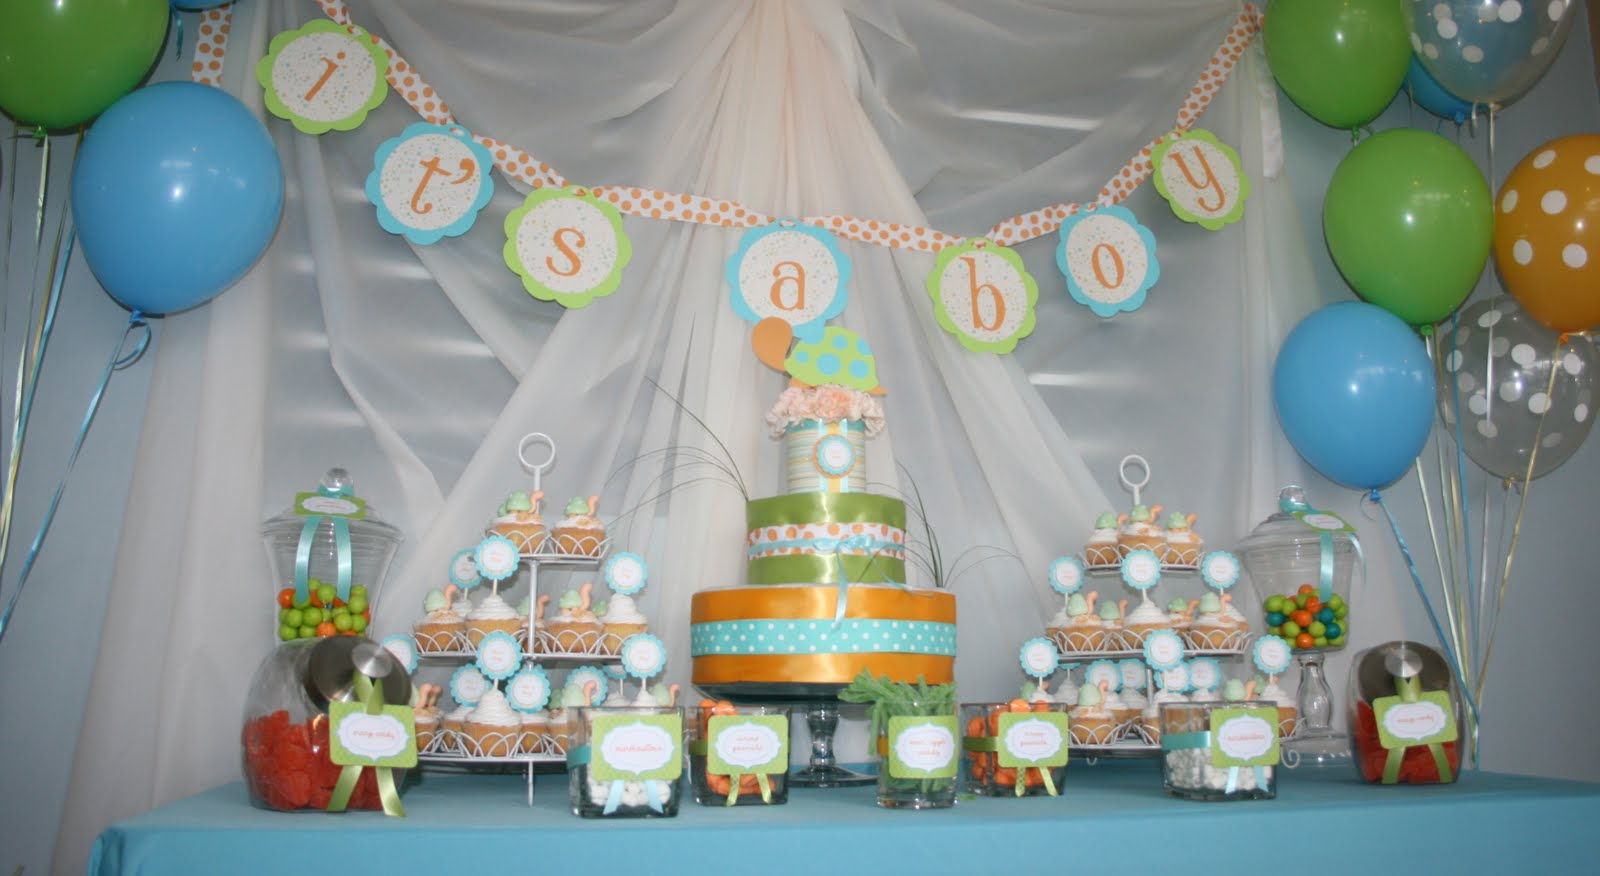 Partylicious events pr september 2010 for Baby showers decoration